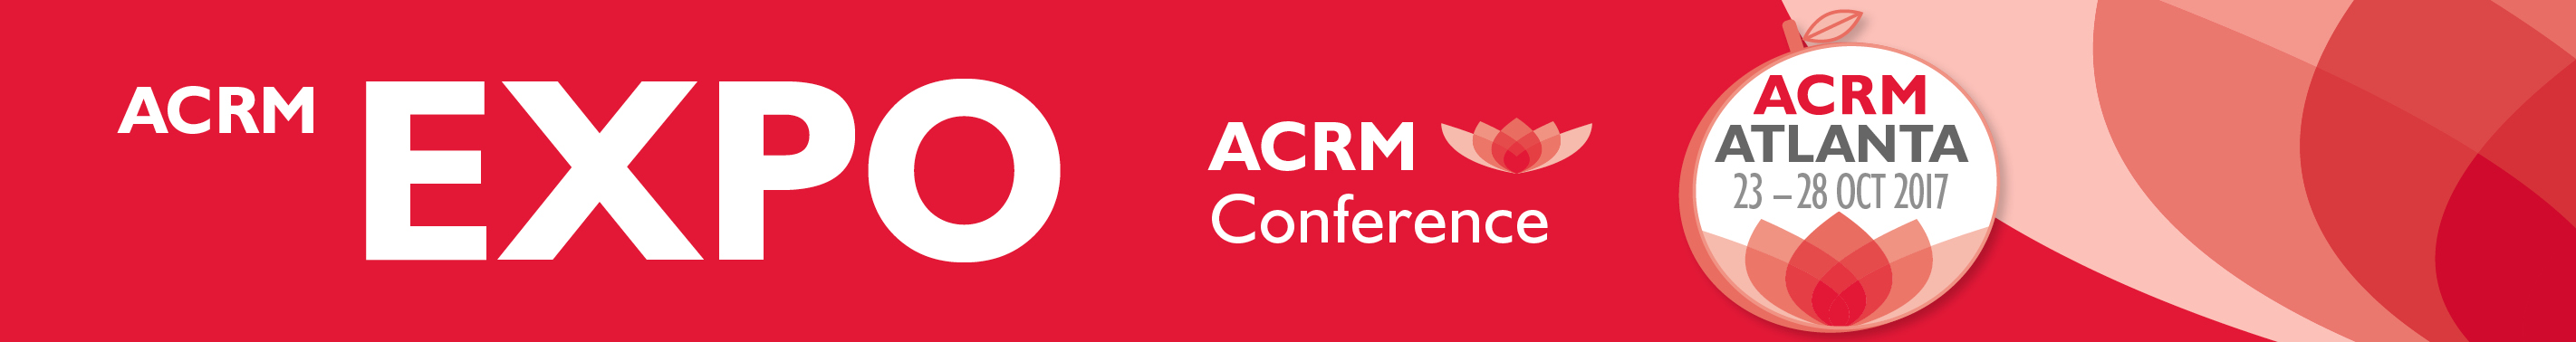 EXPO at ACRM Conference